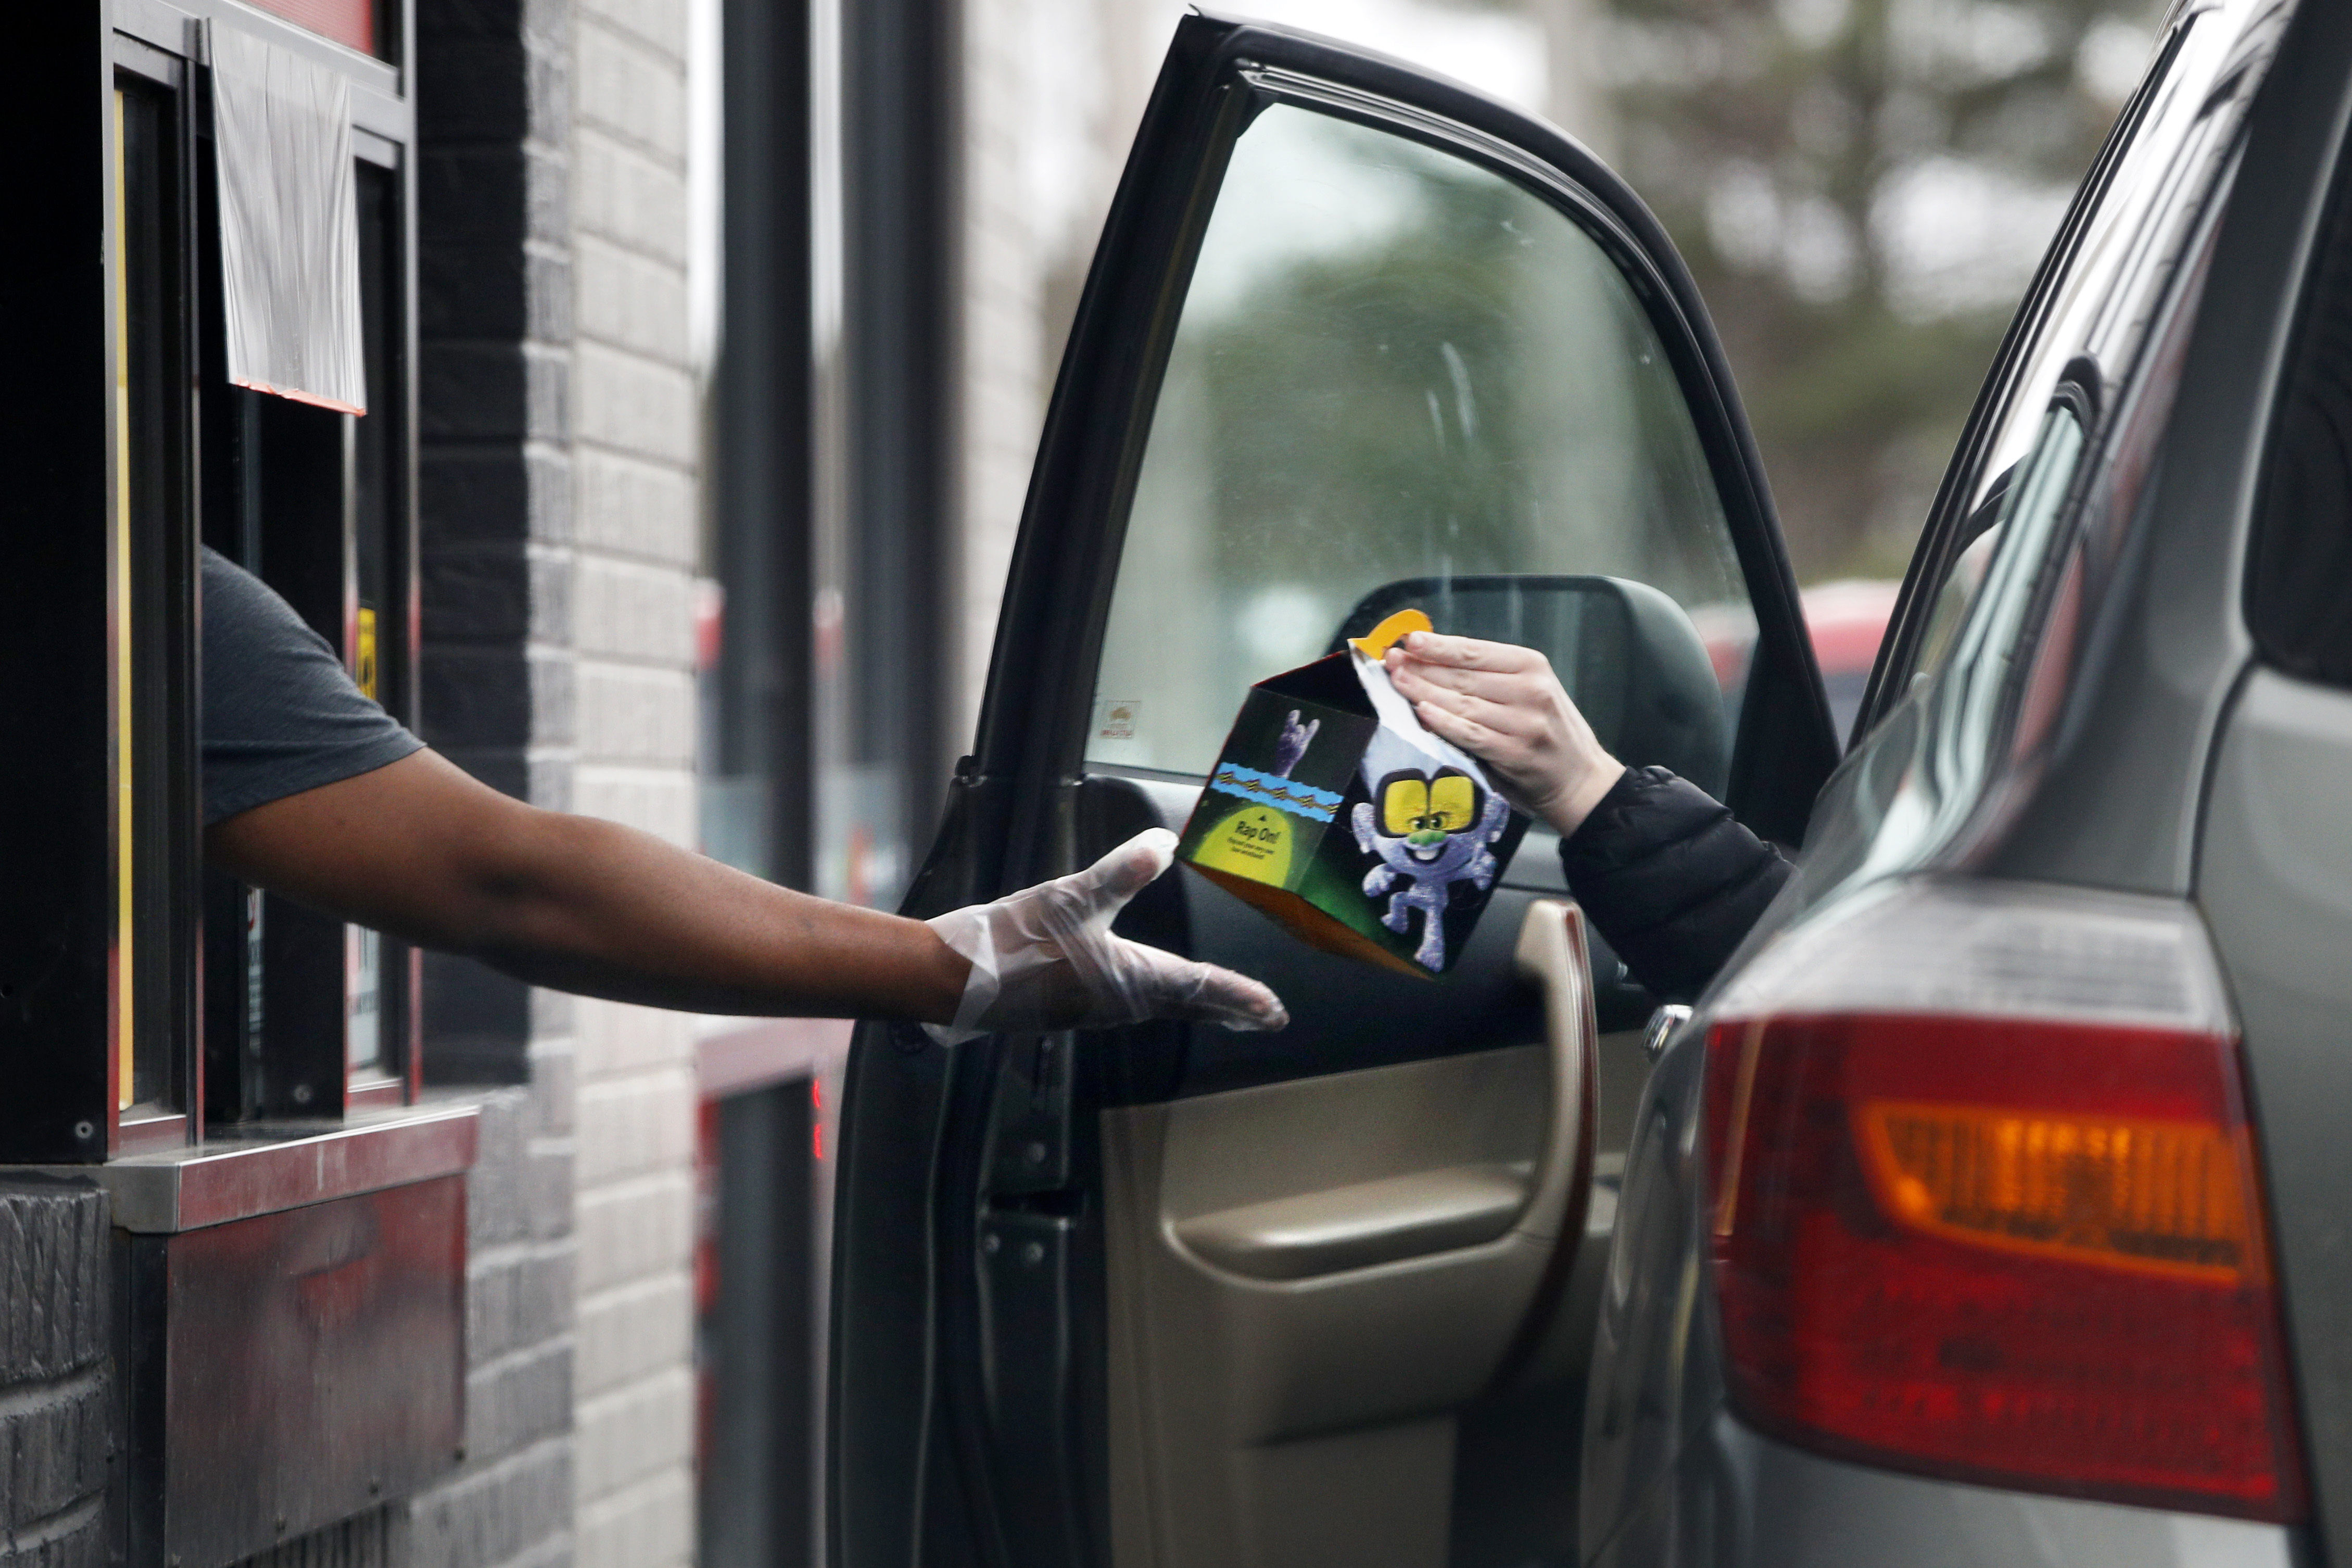 A worker at McDonalds hands a customer a Happy Meal at a drive-through in Augusta,